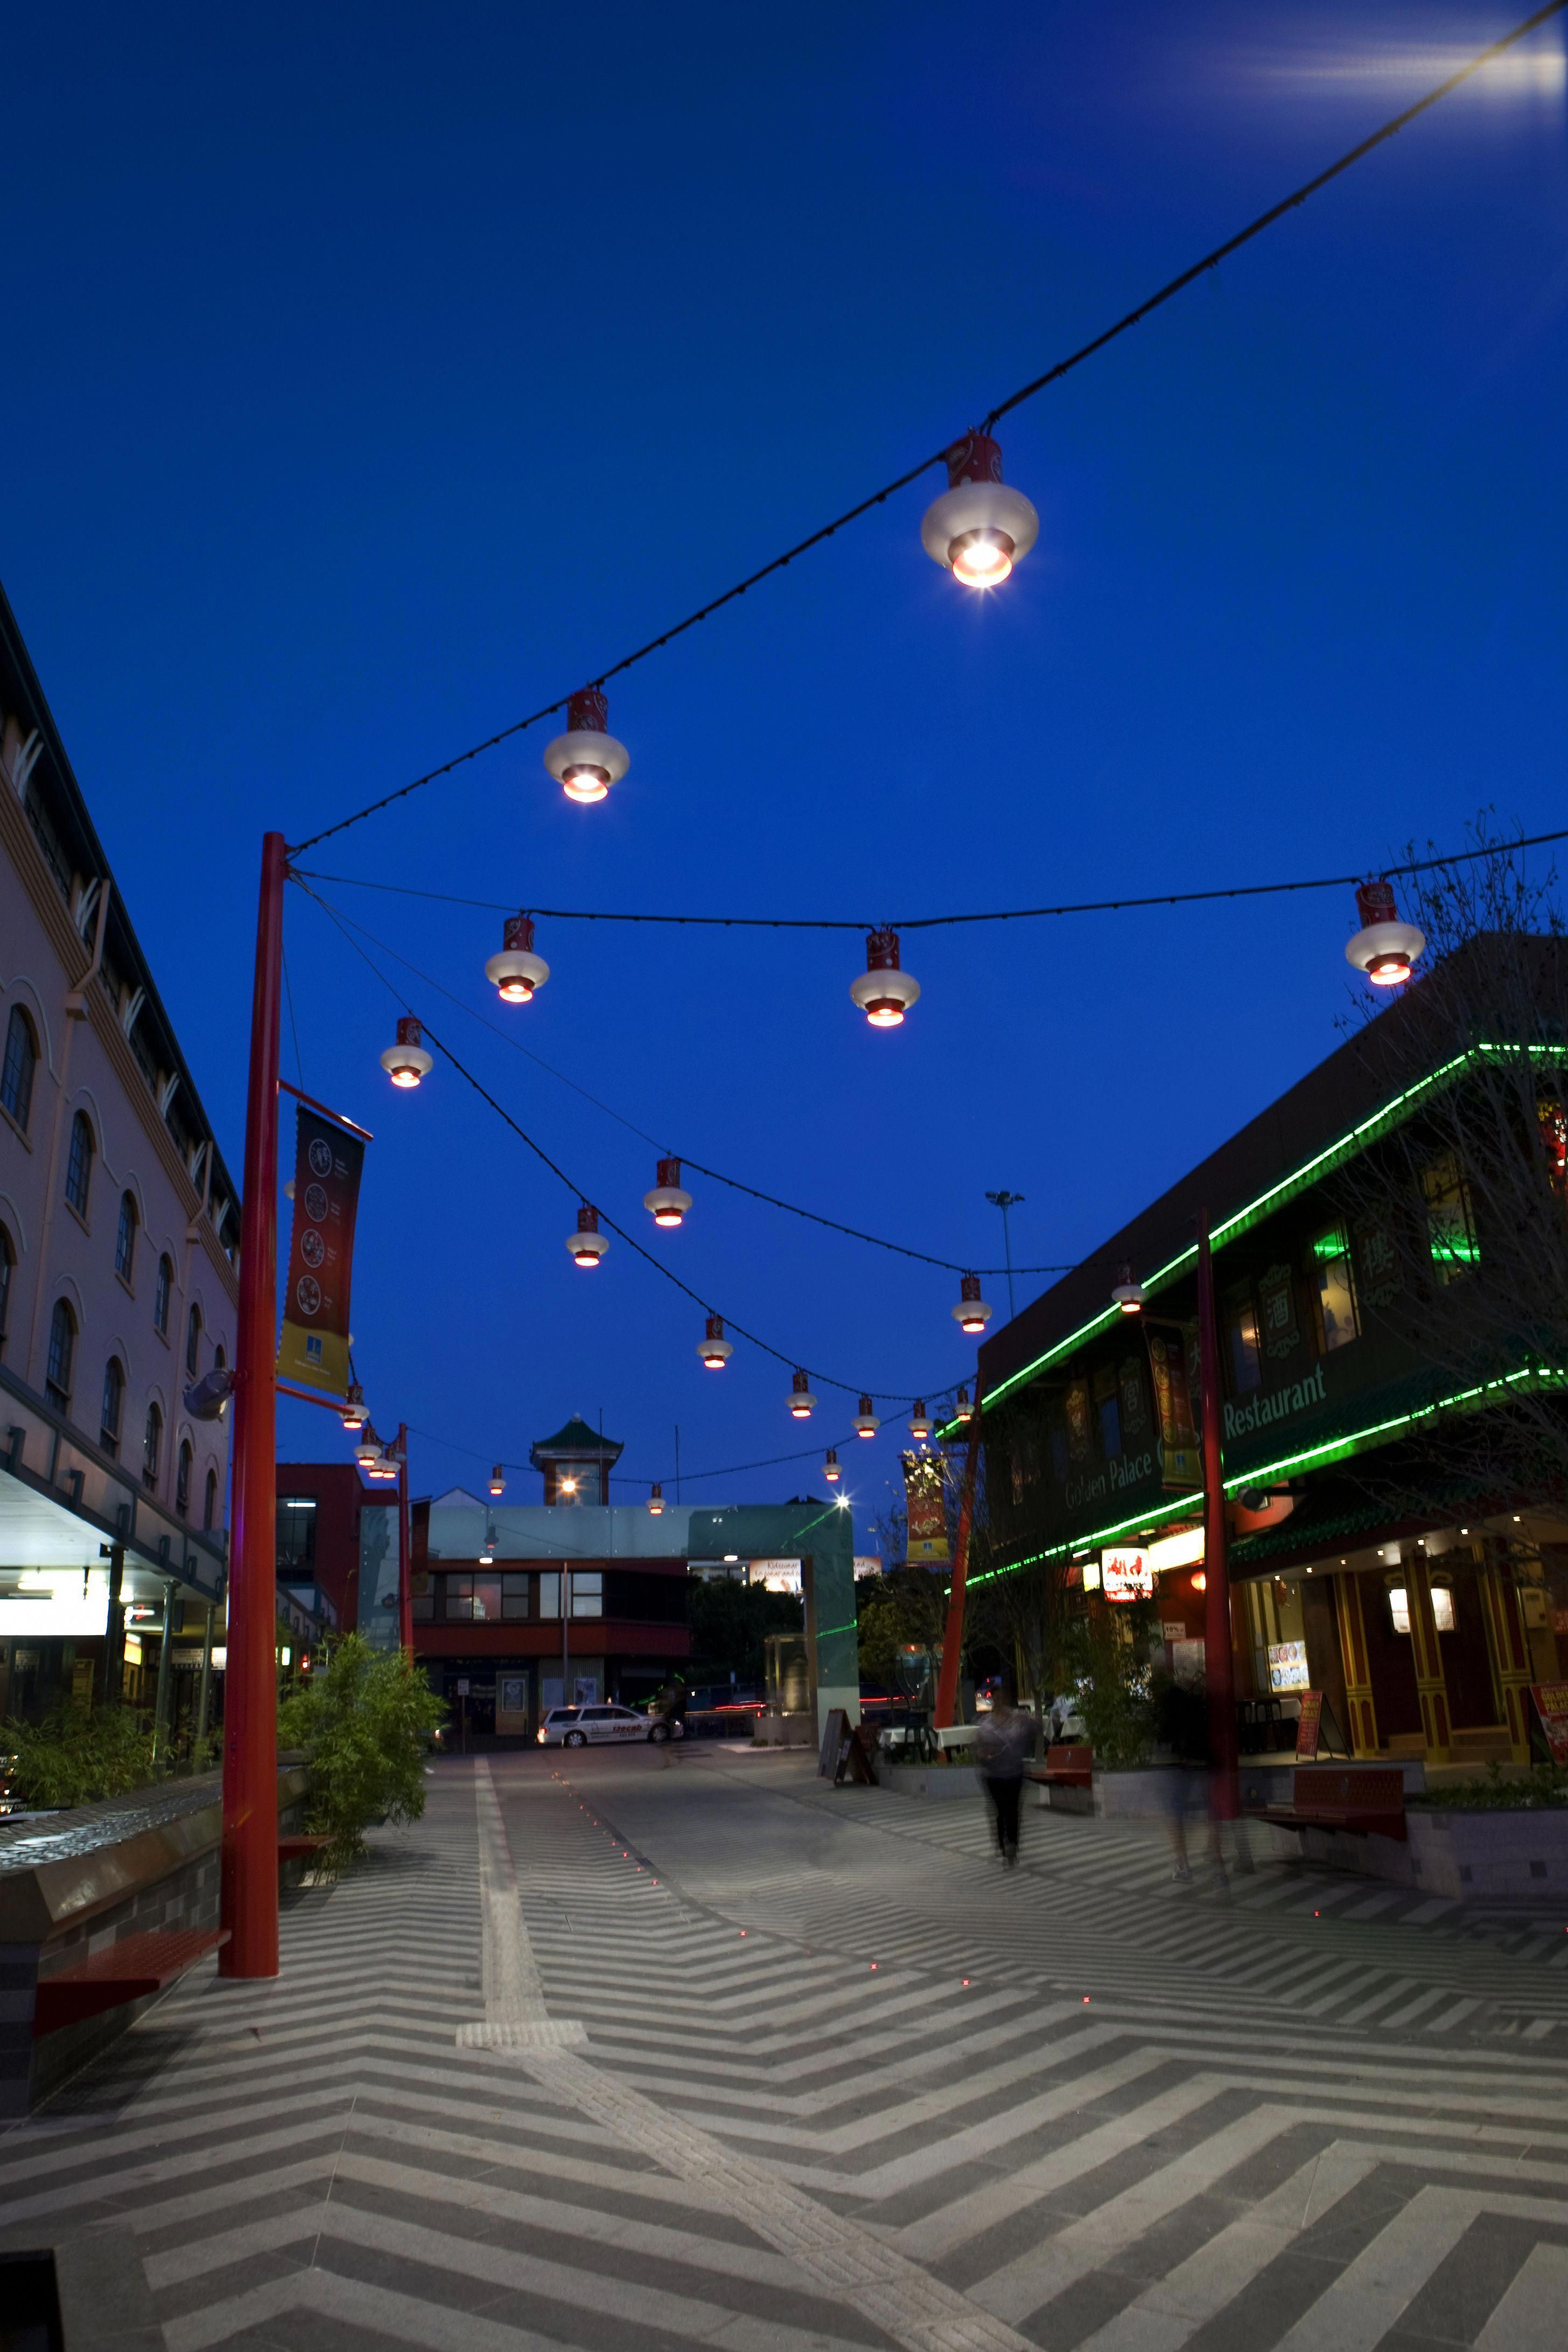 Brisbane Chinatown Mall A Neat Pole Supported Catenary Lighting Structure Ronstan Completed In 201 Landscape Lighting Park Lighting Landscape Lighting Design